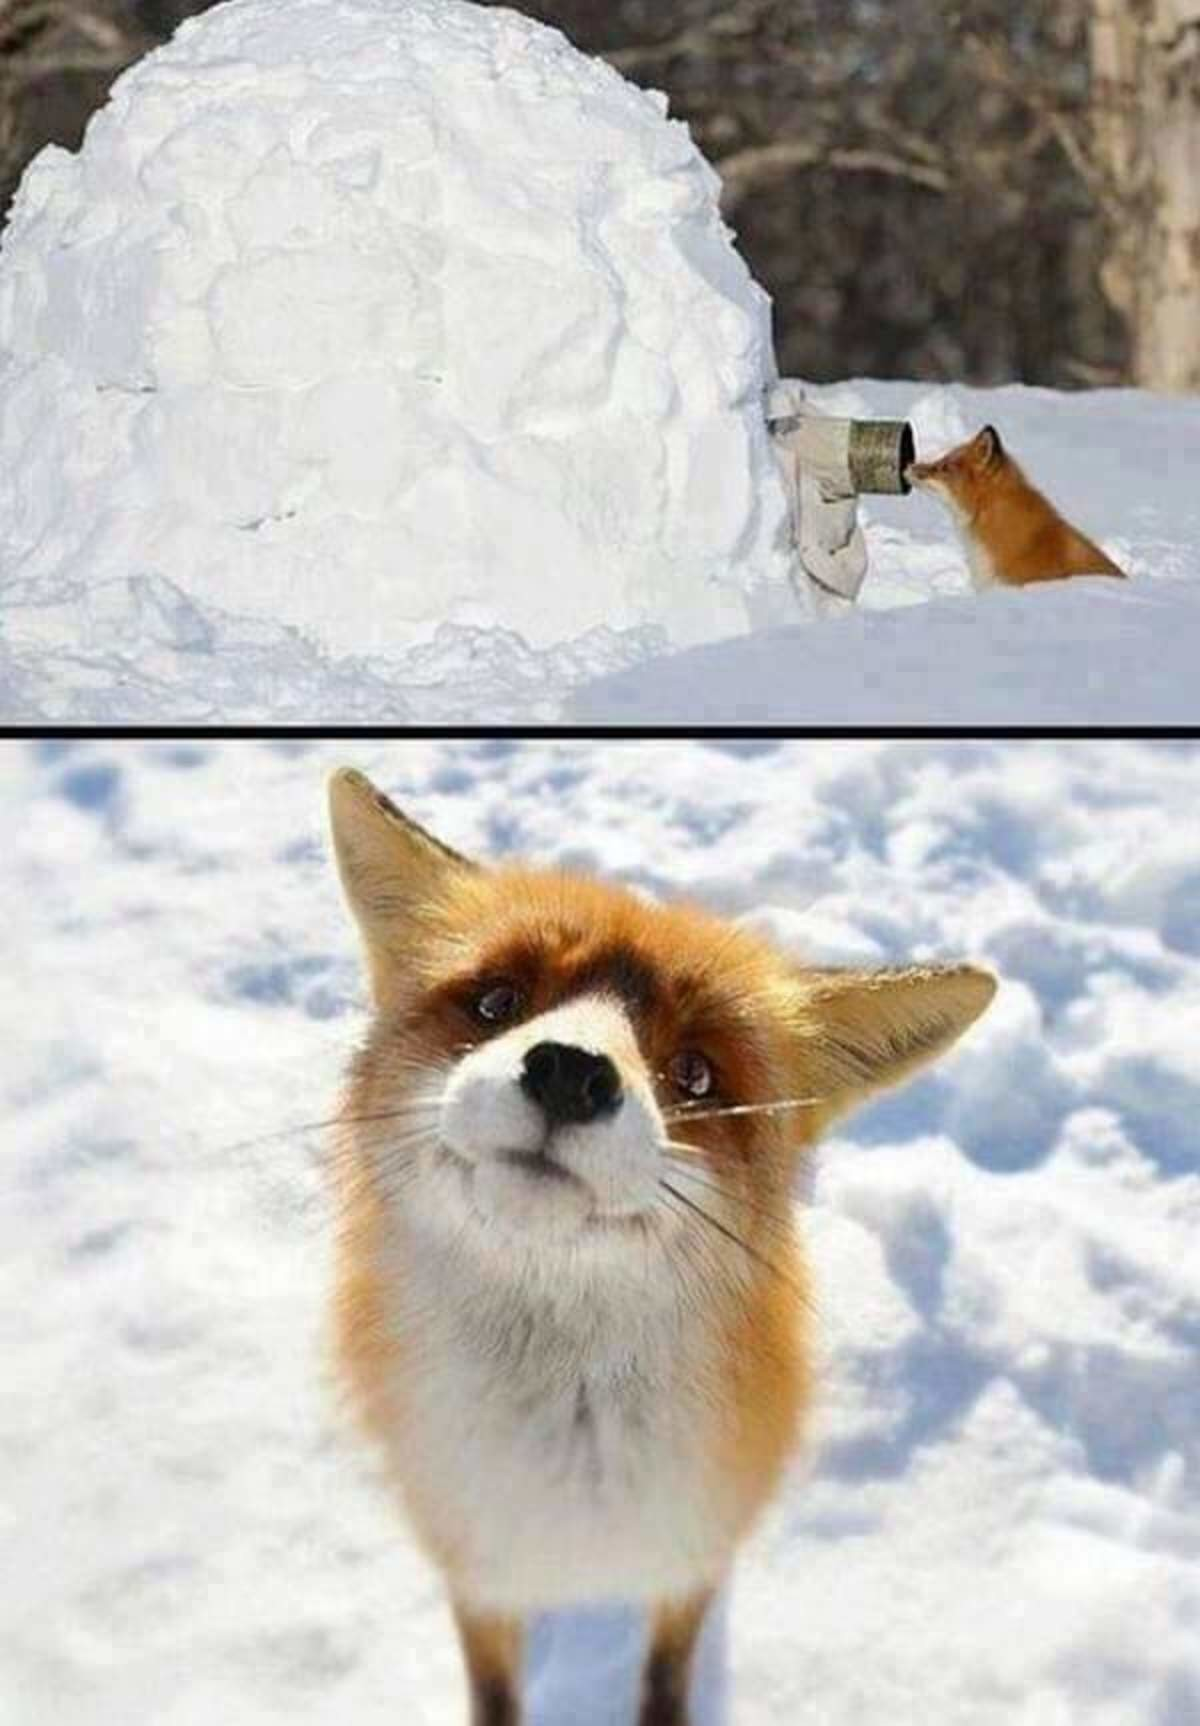 """""""..you know i can see you...do you?"""". join list: DoseOfCuteness (553 subs)Mention History.. Did they dead ass build a igloo for taking photos? Dope"""